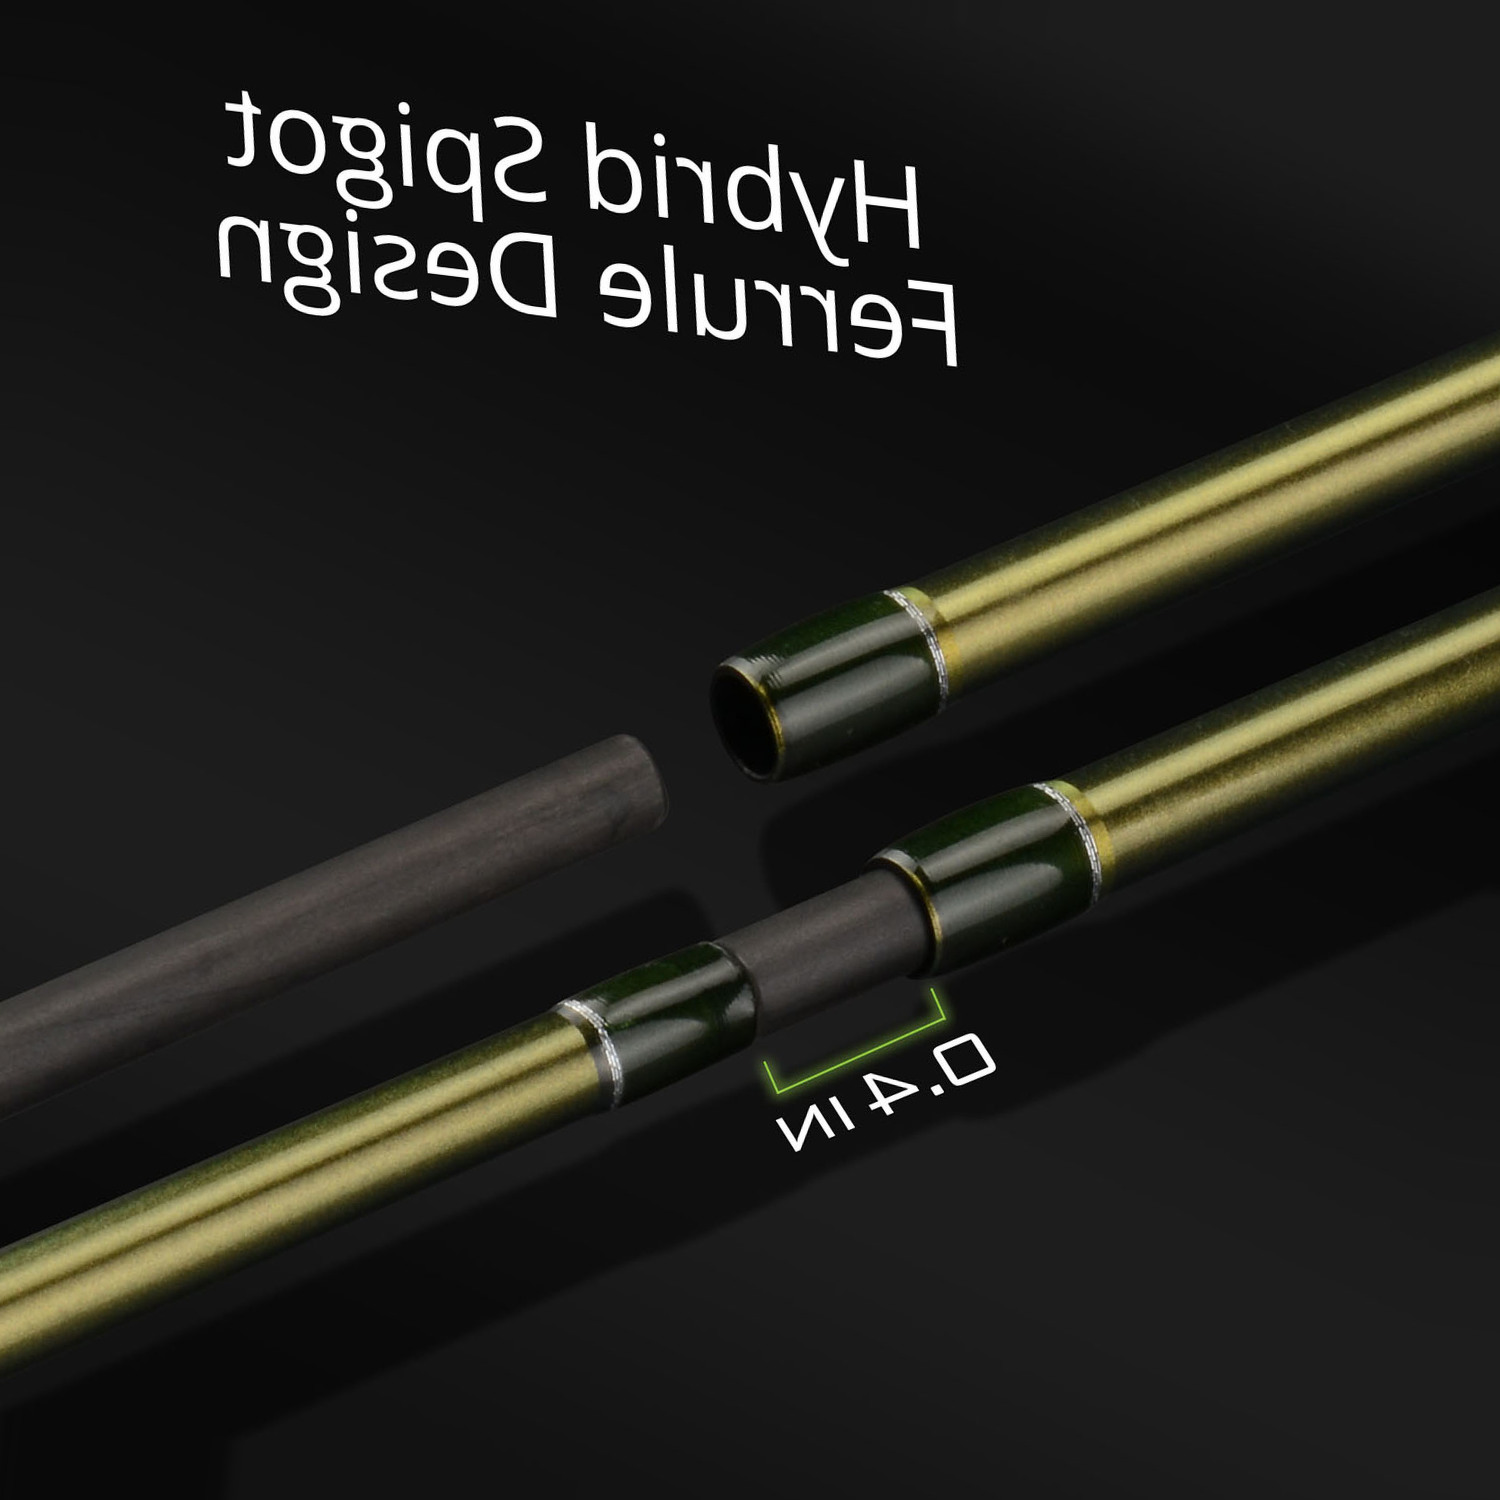 KastKing New WideEye Walleye Fishing Rod